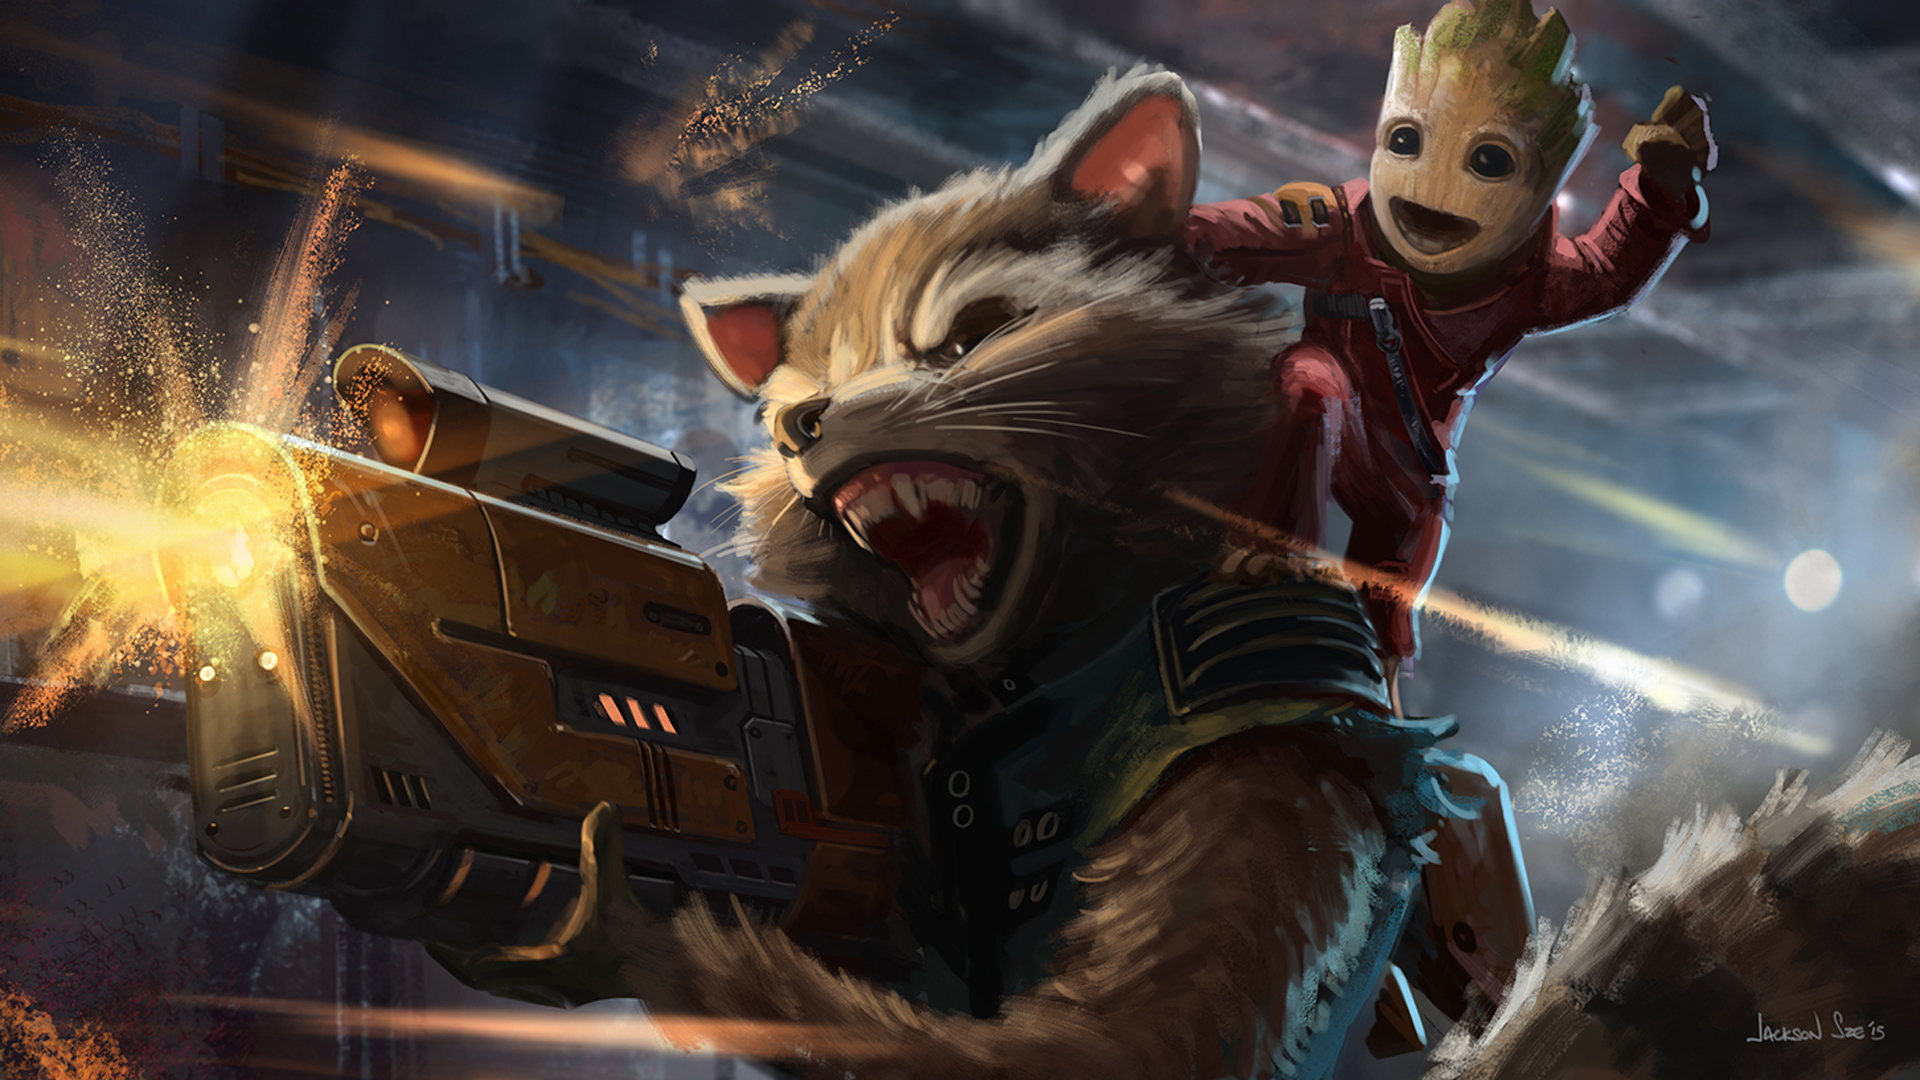 Baby Groot And Rocket Raccoon Artwork, HD Movies, 4k